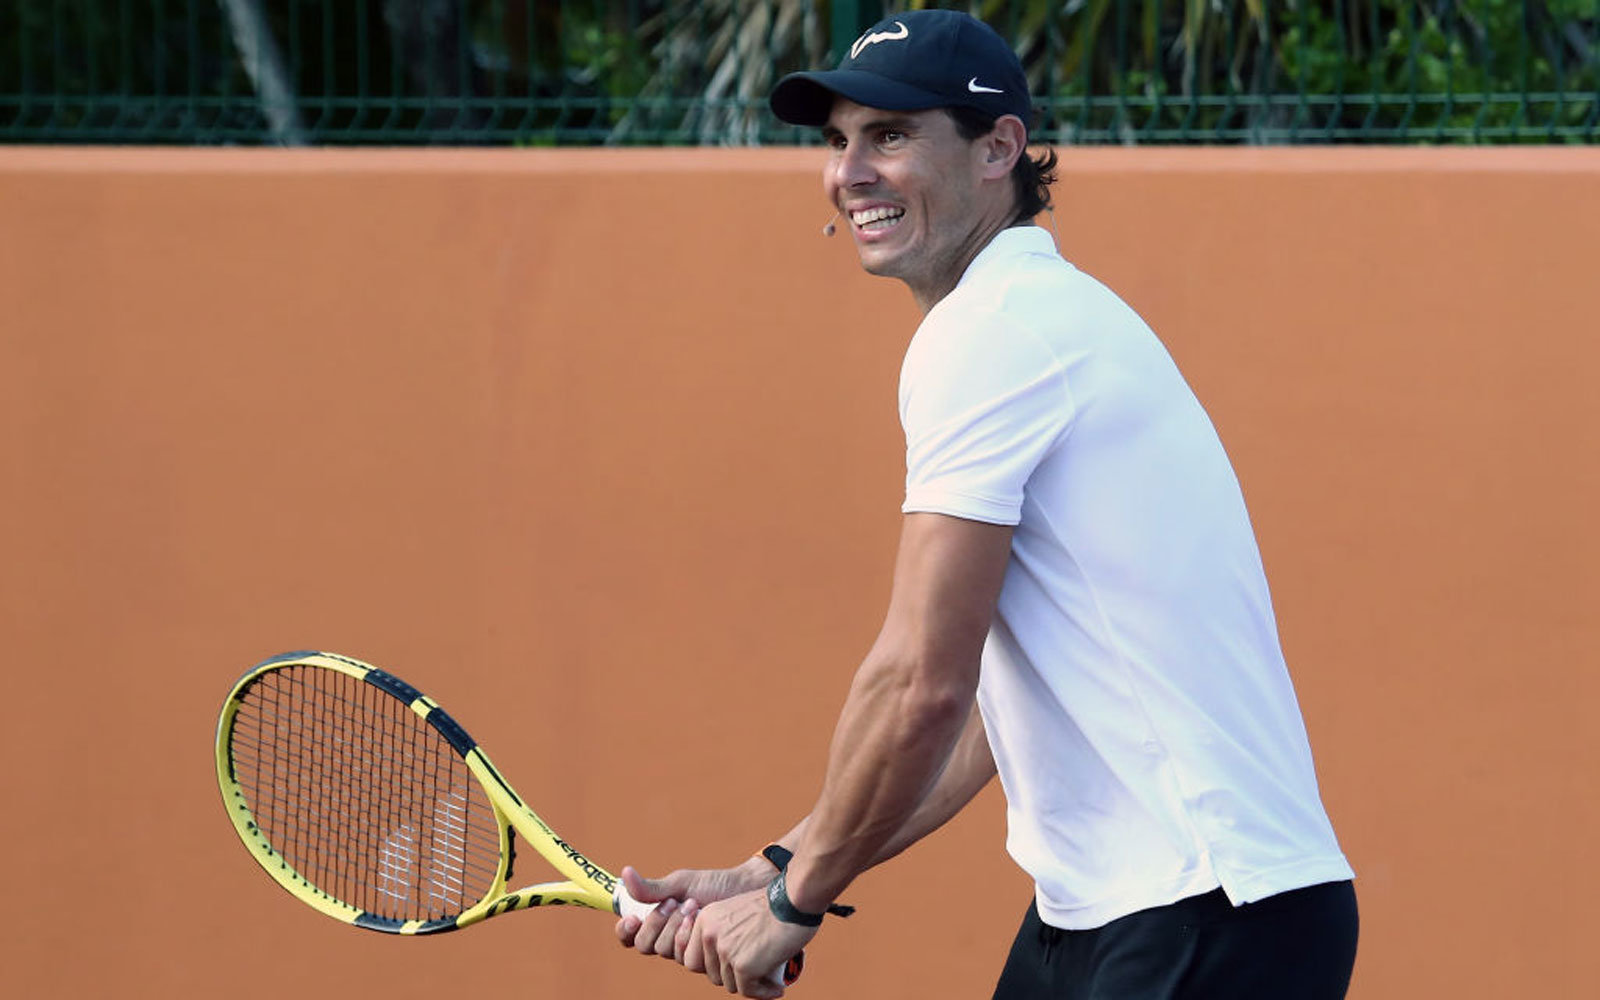 You could train with Rafael Nadal's tennis coach in Greece this summer